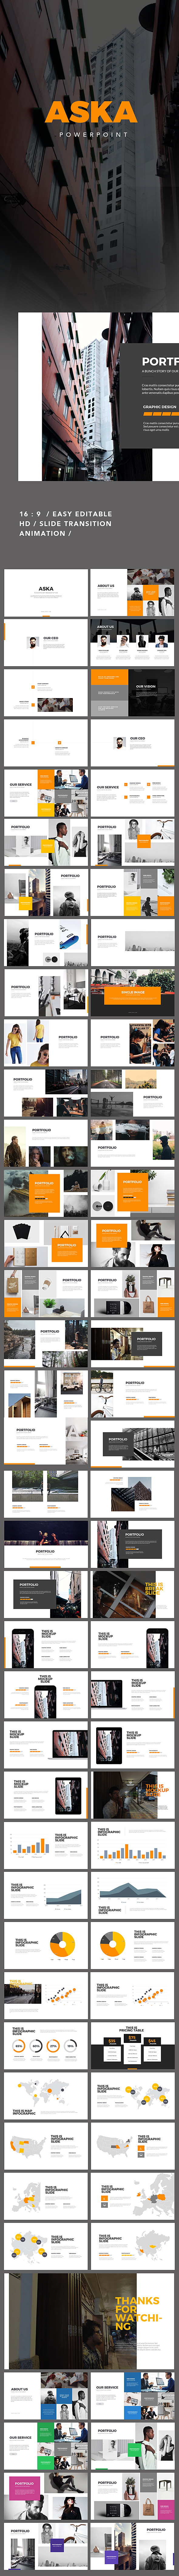 Aska Powerpoint Presentation - Creative PowerPoint Templates